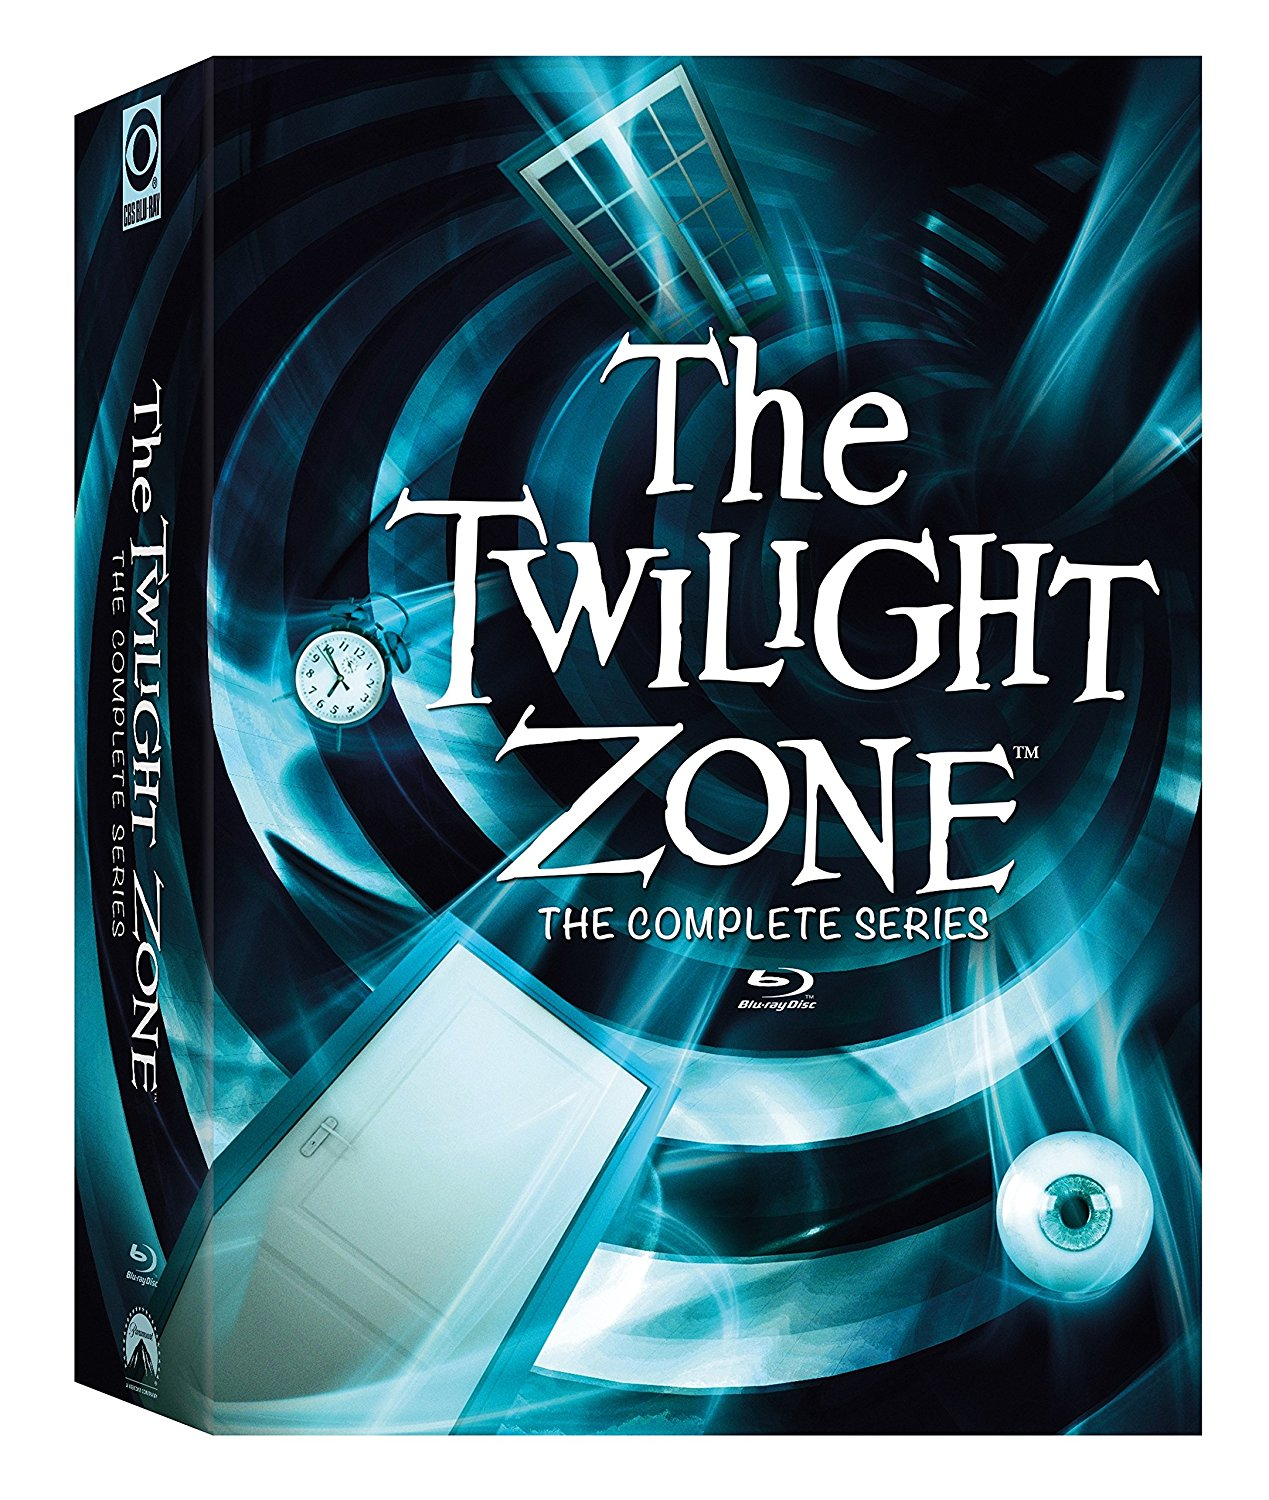 The Twilight Zone: The Complete Series Blu-ray (DVD)